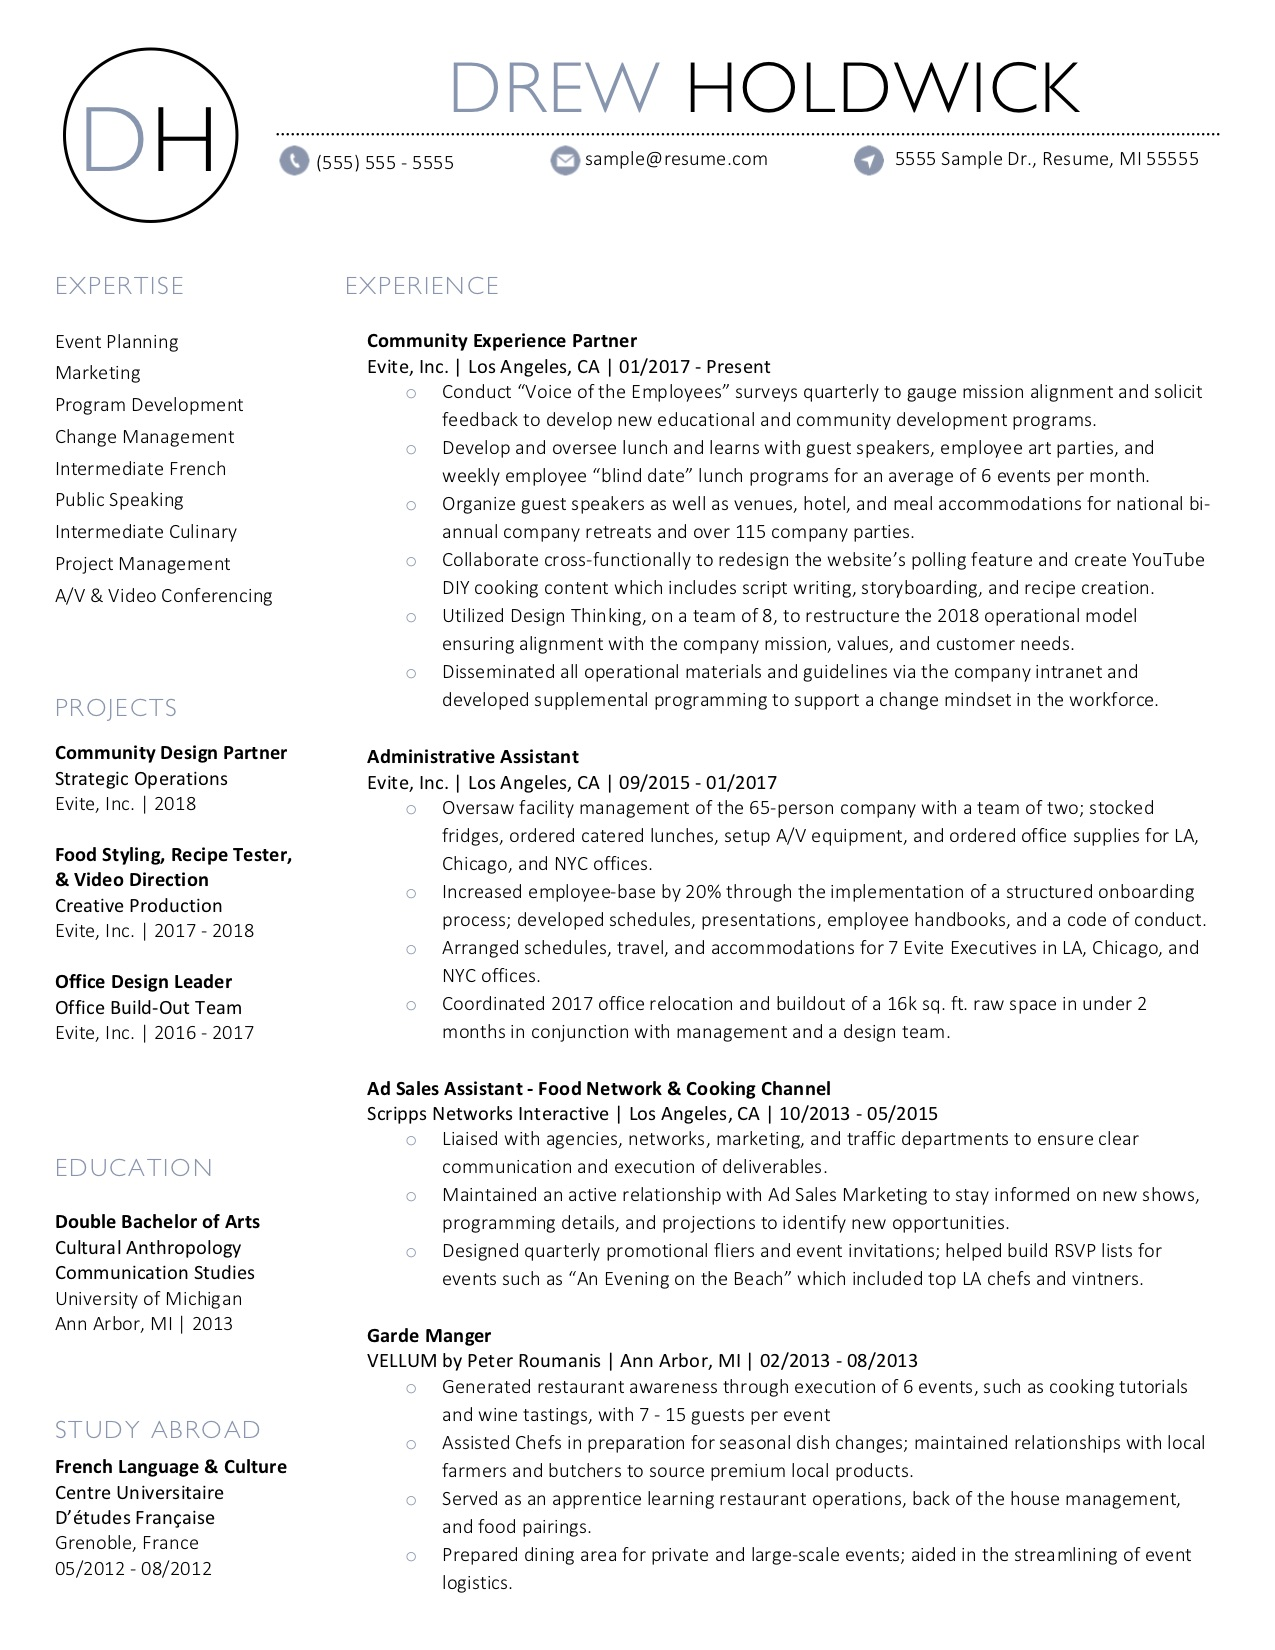 Client Resume #34. Click to Enlarge.